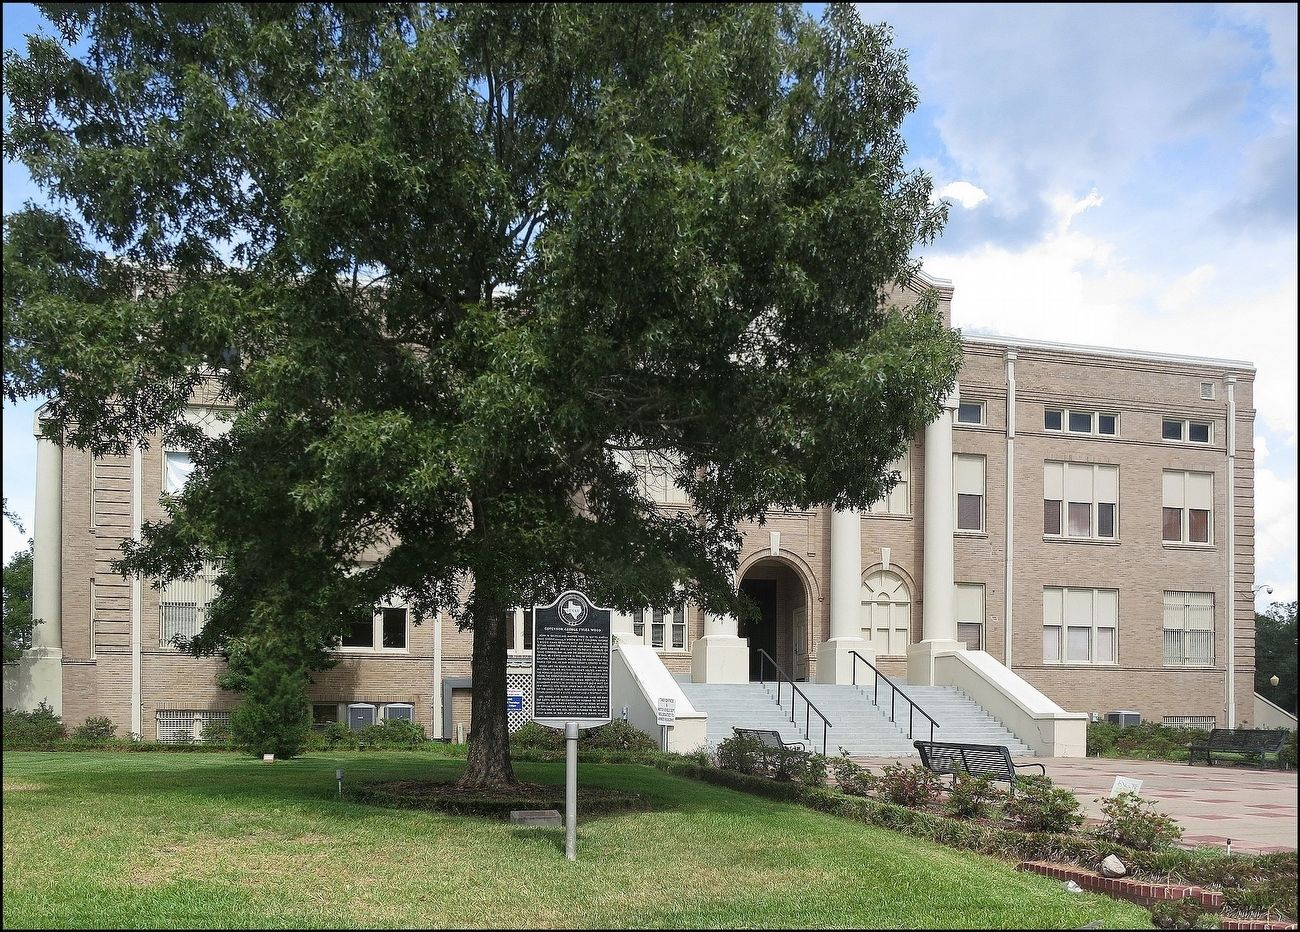 San Jacinto County Courthouse image. Click for full size.